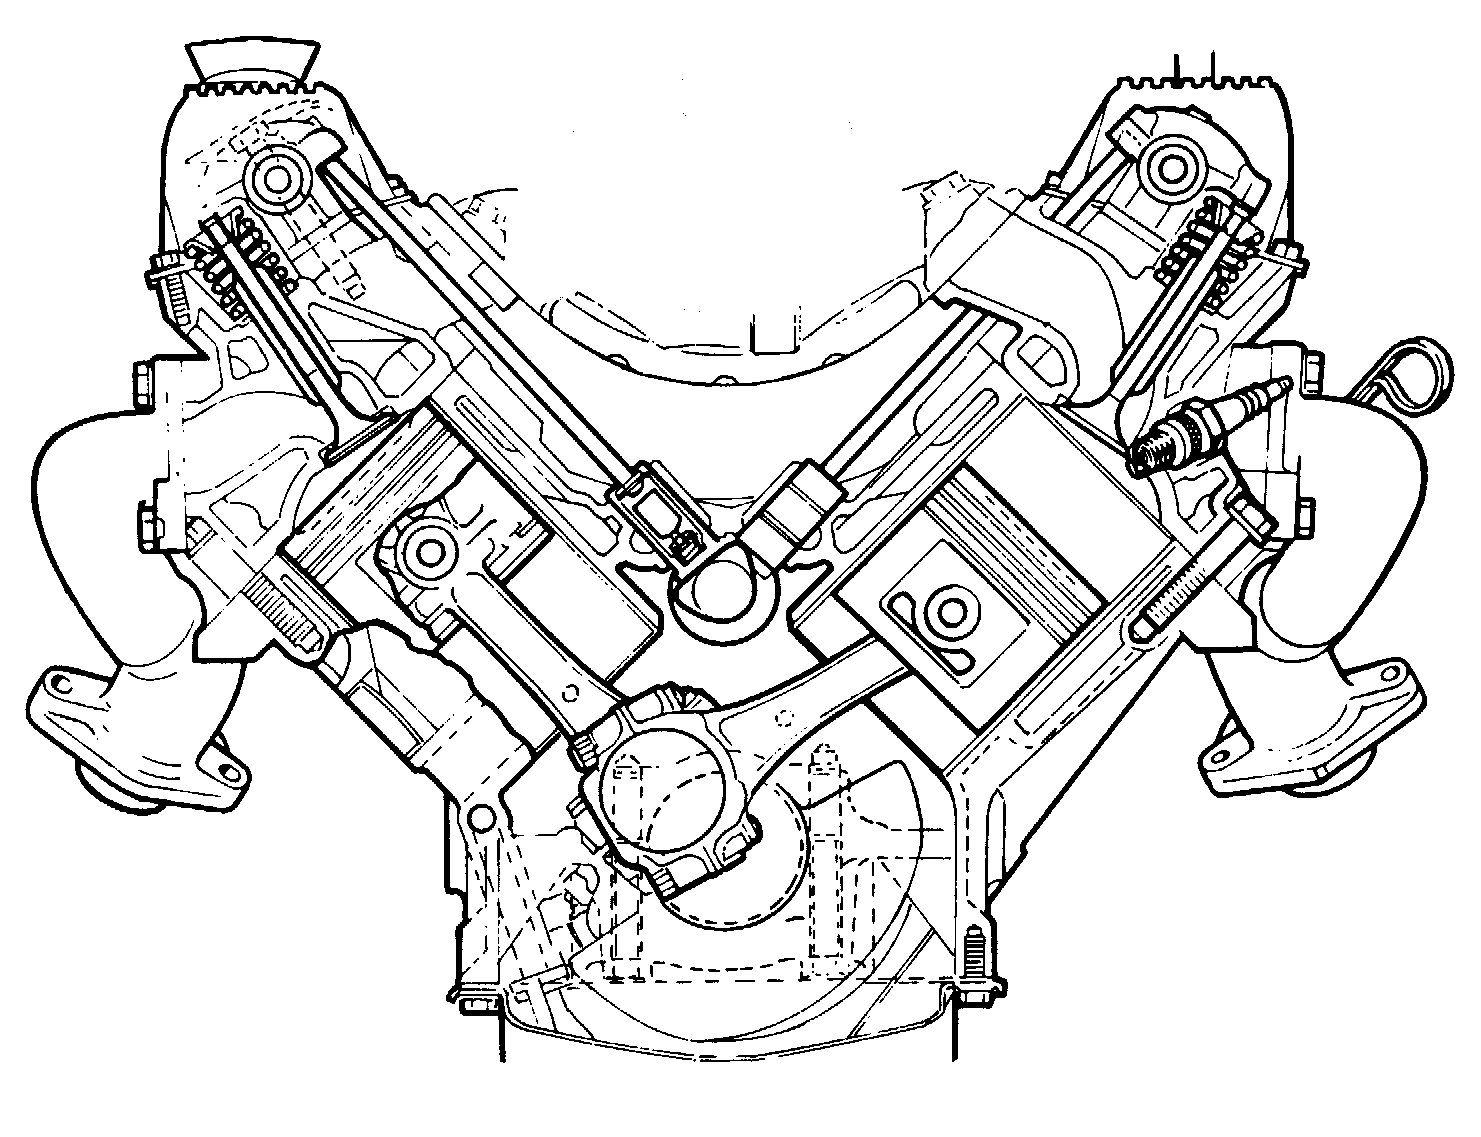 V8 Engine Exploded View Diagram Car, V8, Free Engine Image For User Manual Download